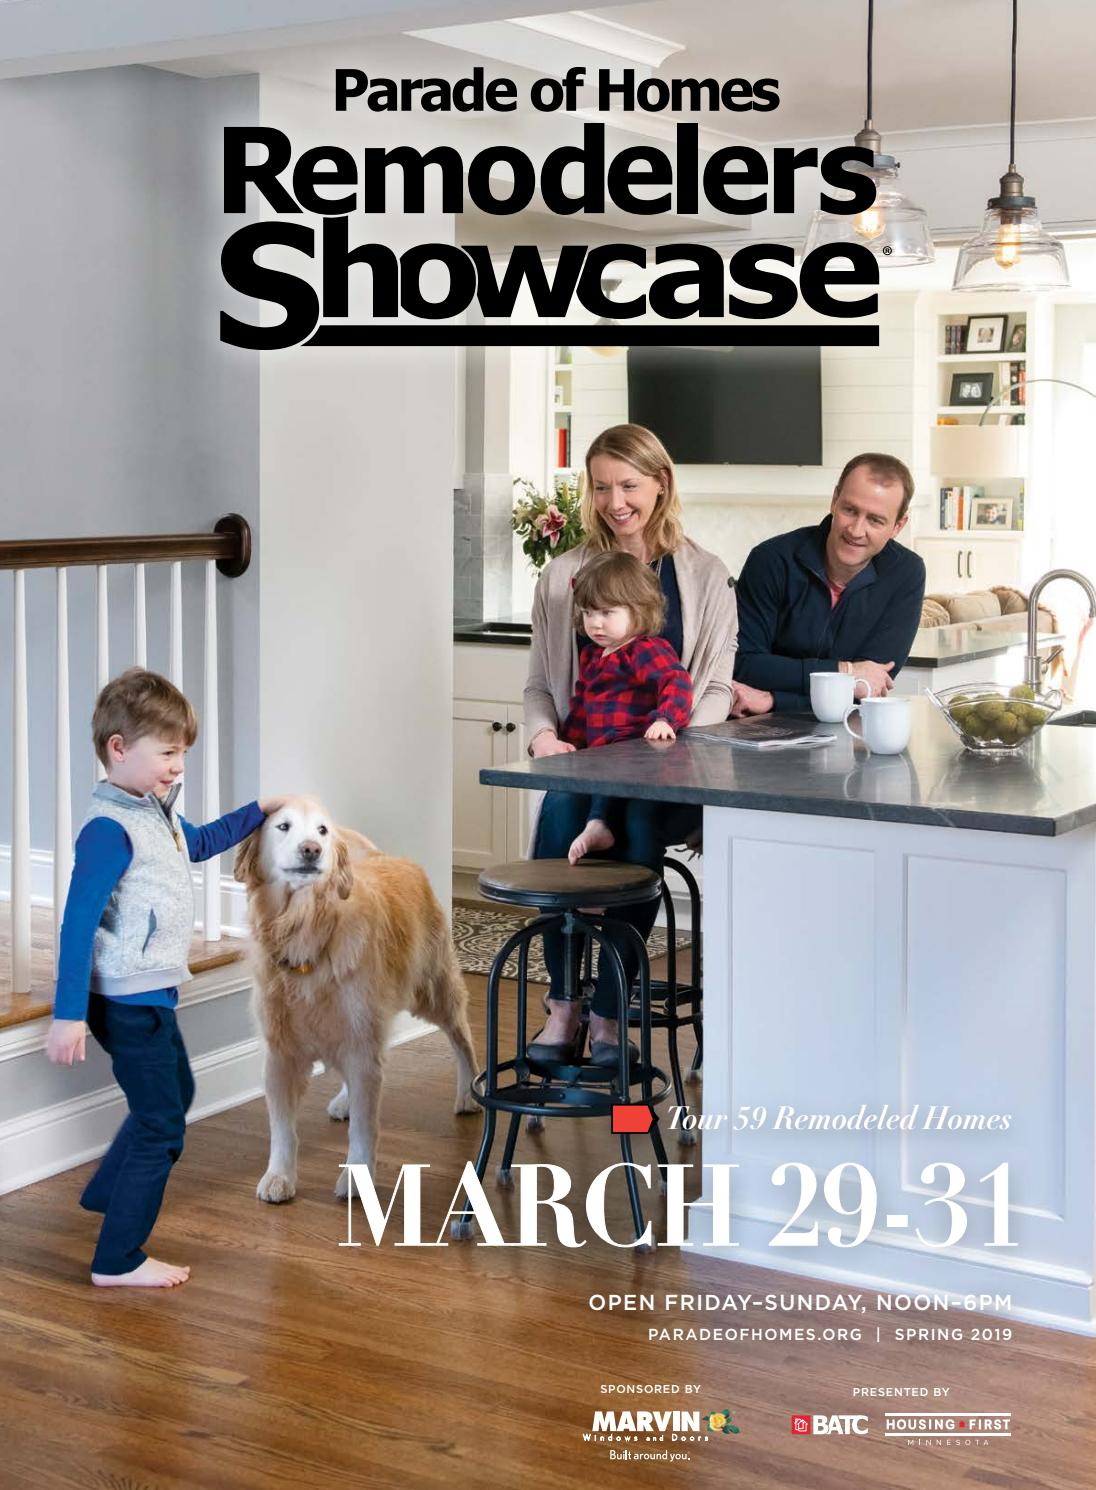 2019 Spring Parade of Homes Remodelers Showcase® Guidebook by BATC